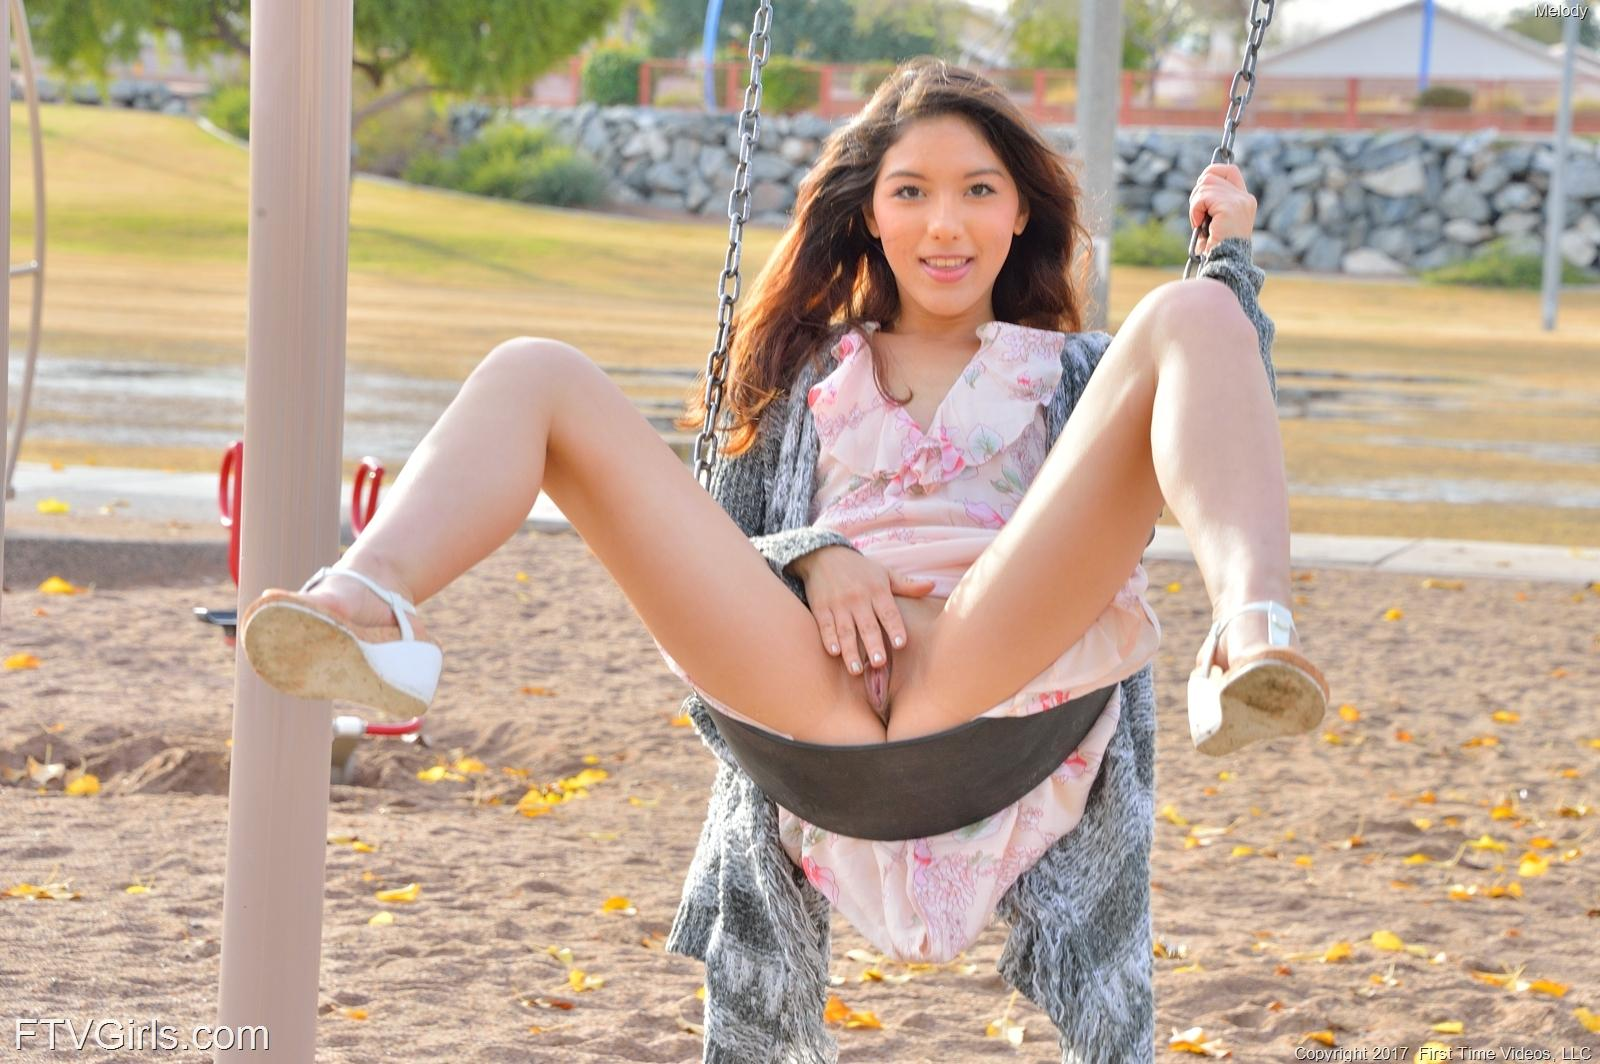 kellys perfect labia exposed upskirt and pantyless for ftvgirls #2